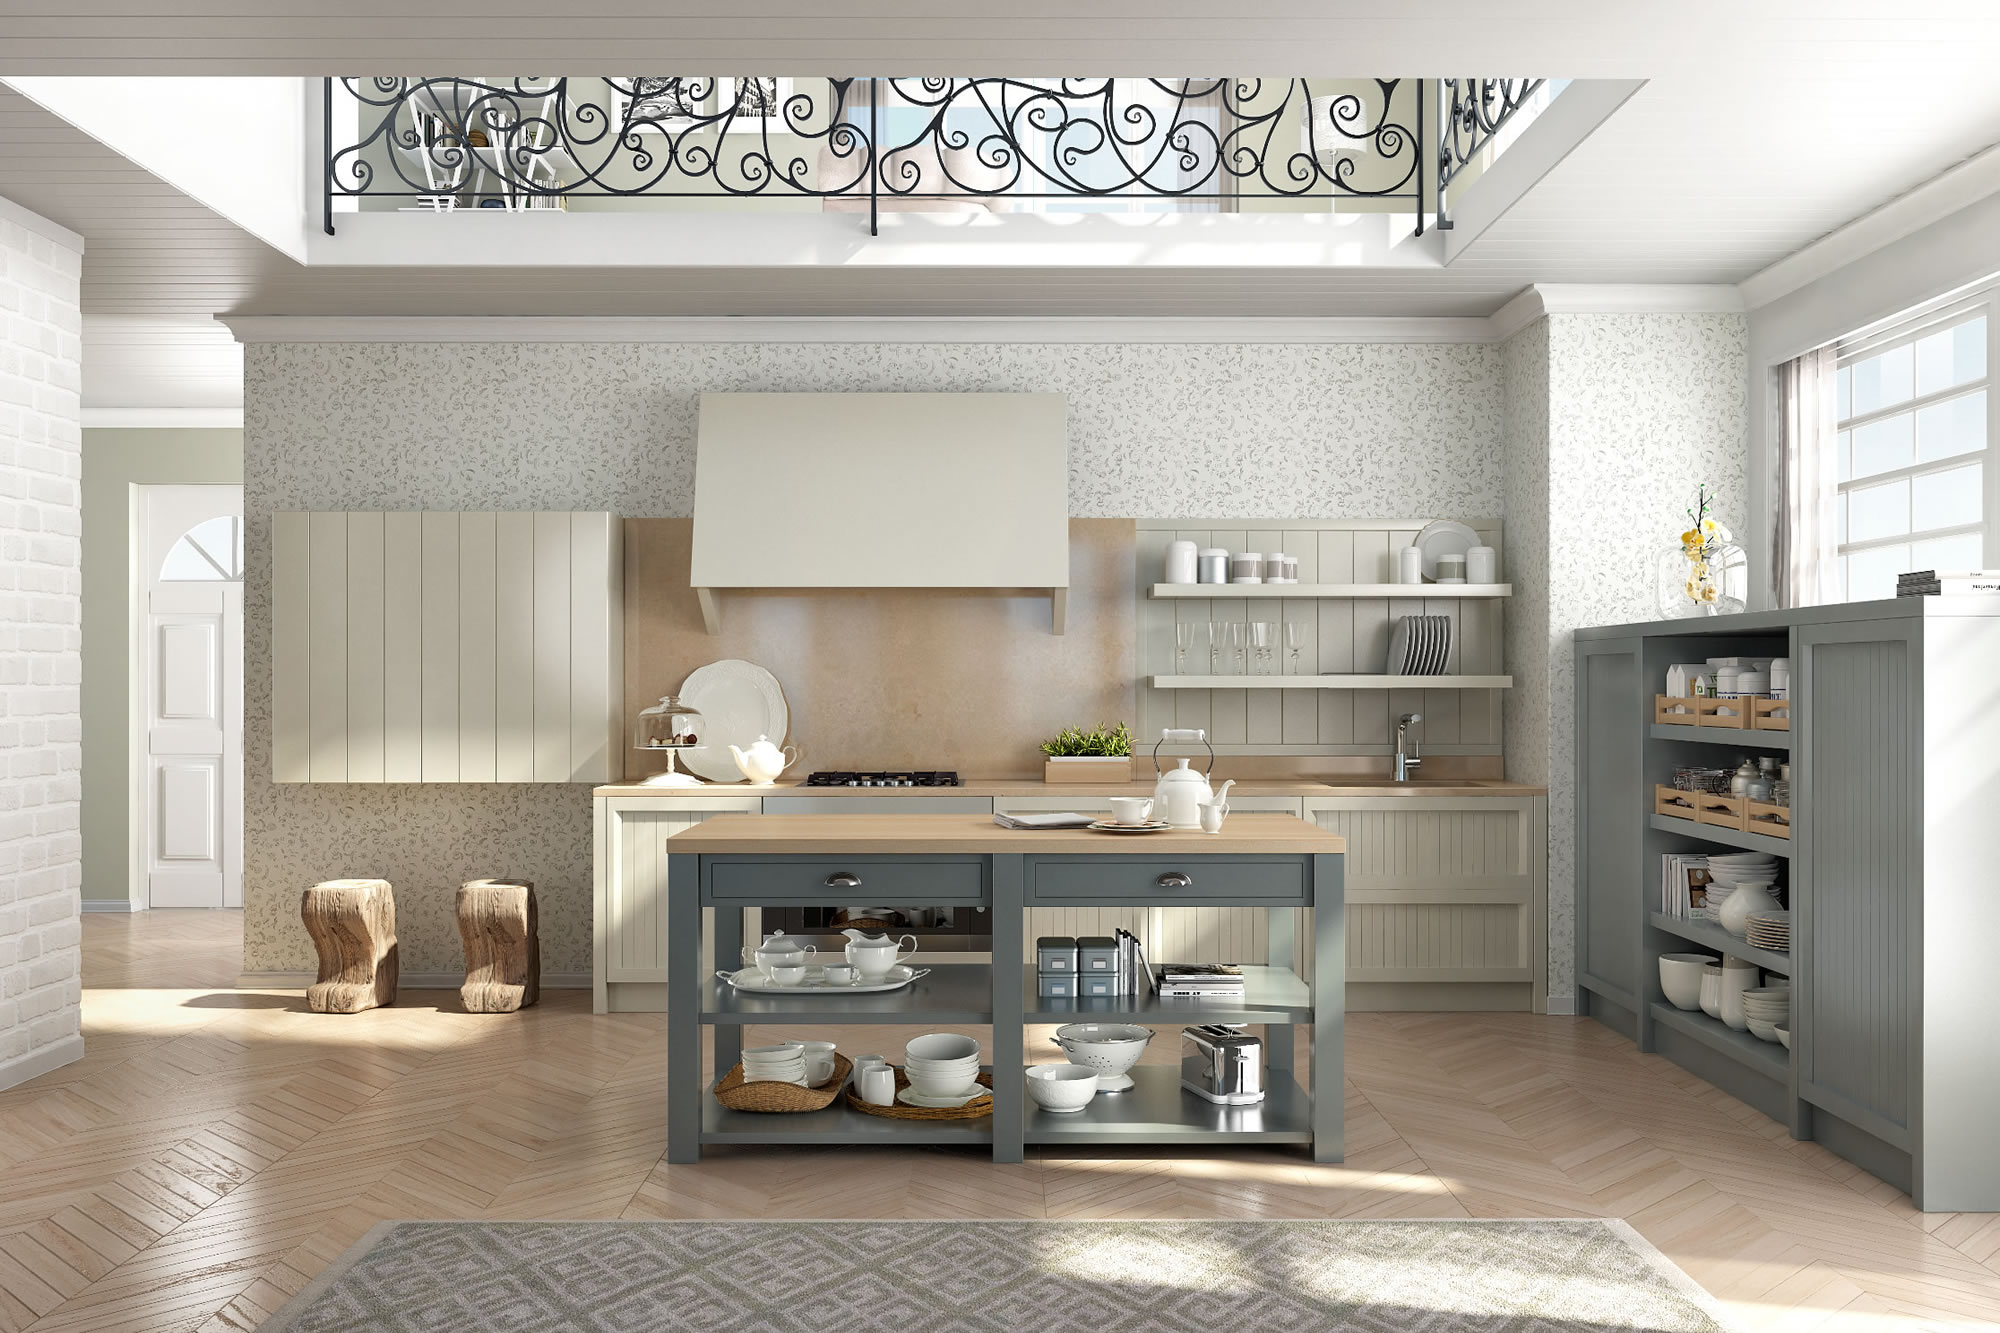 Cucine design stile inglese componibili decorazione d 39 interni farrow ball siena - Foto cucine country ...